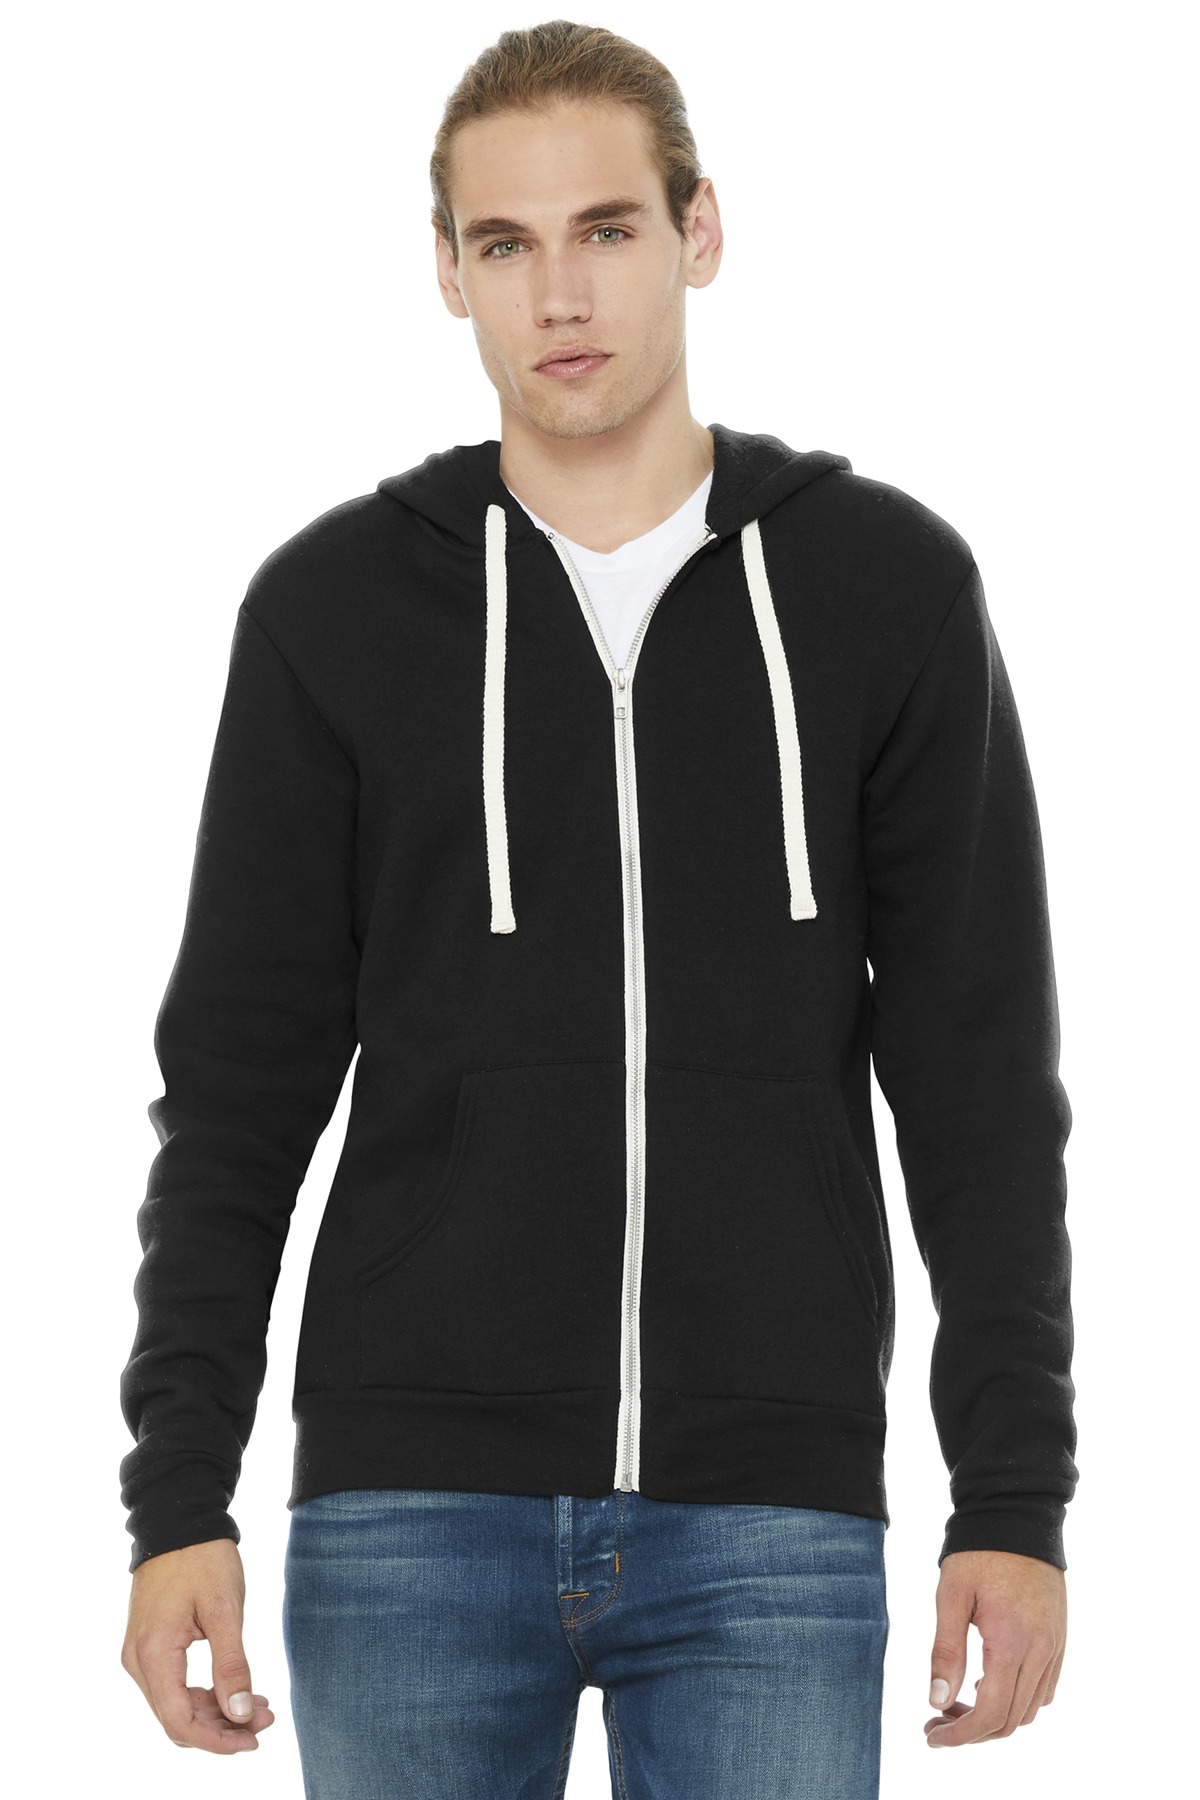 BELLA+CANVAS  ®  Unisex Triblend Sponge Fleece Full-Zip Hoodie. BC3909 - Solid Black Triblend